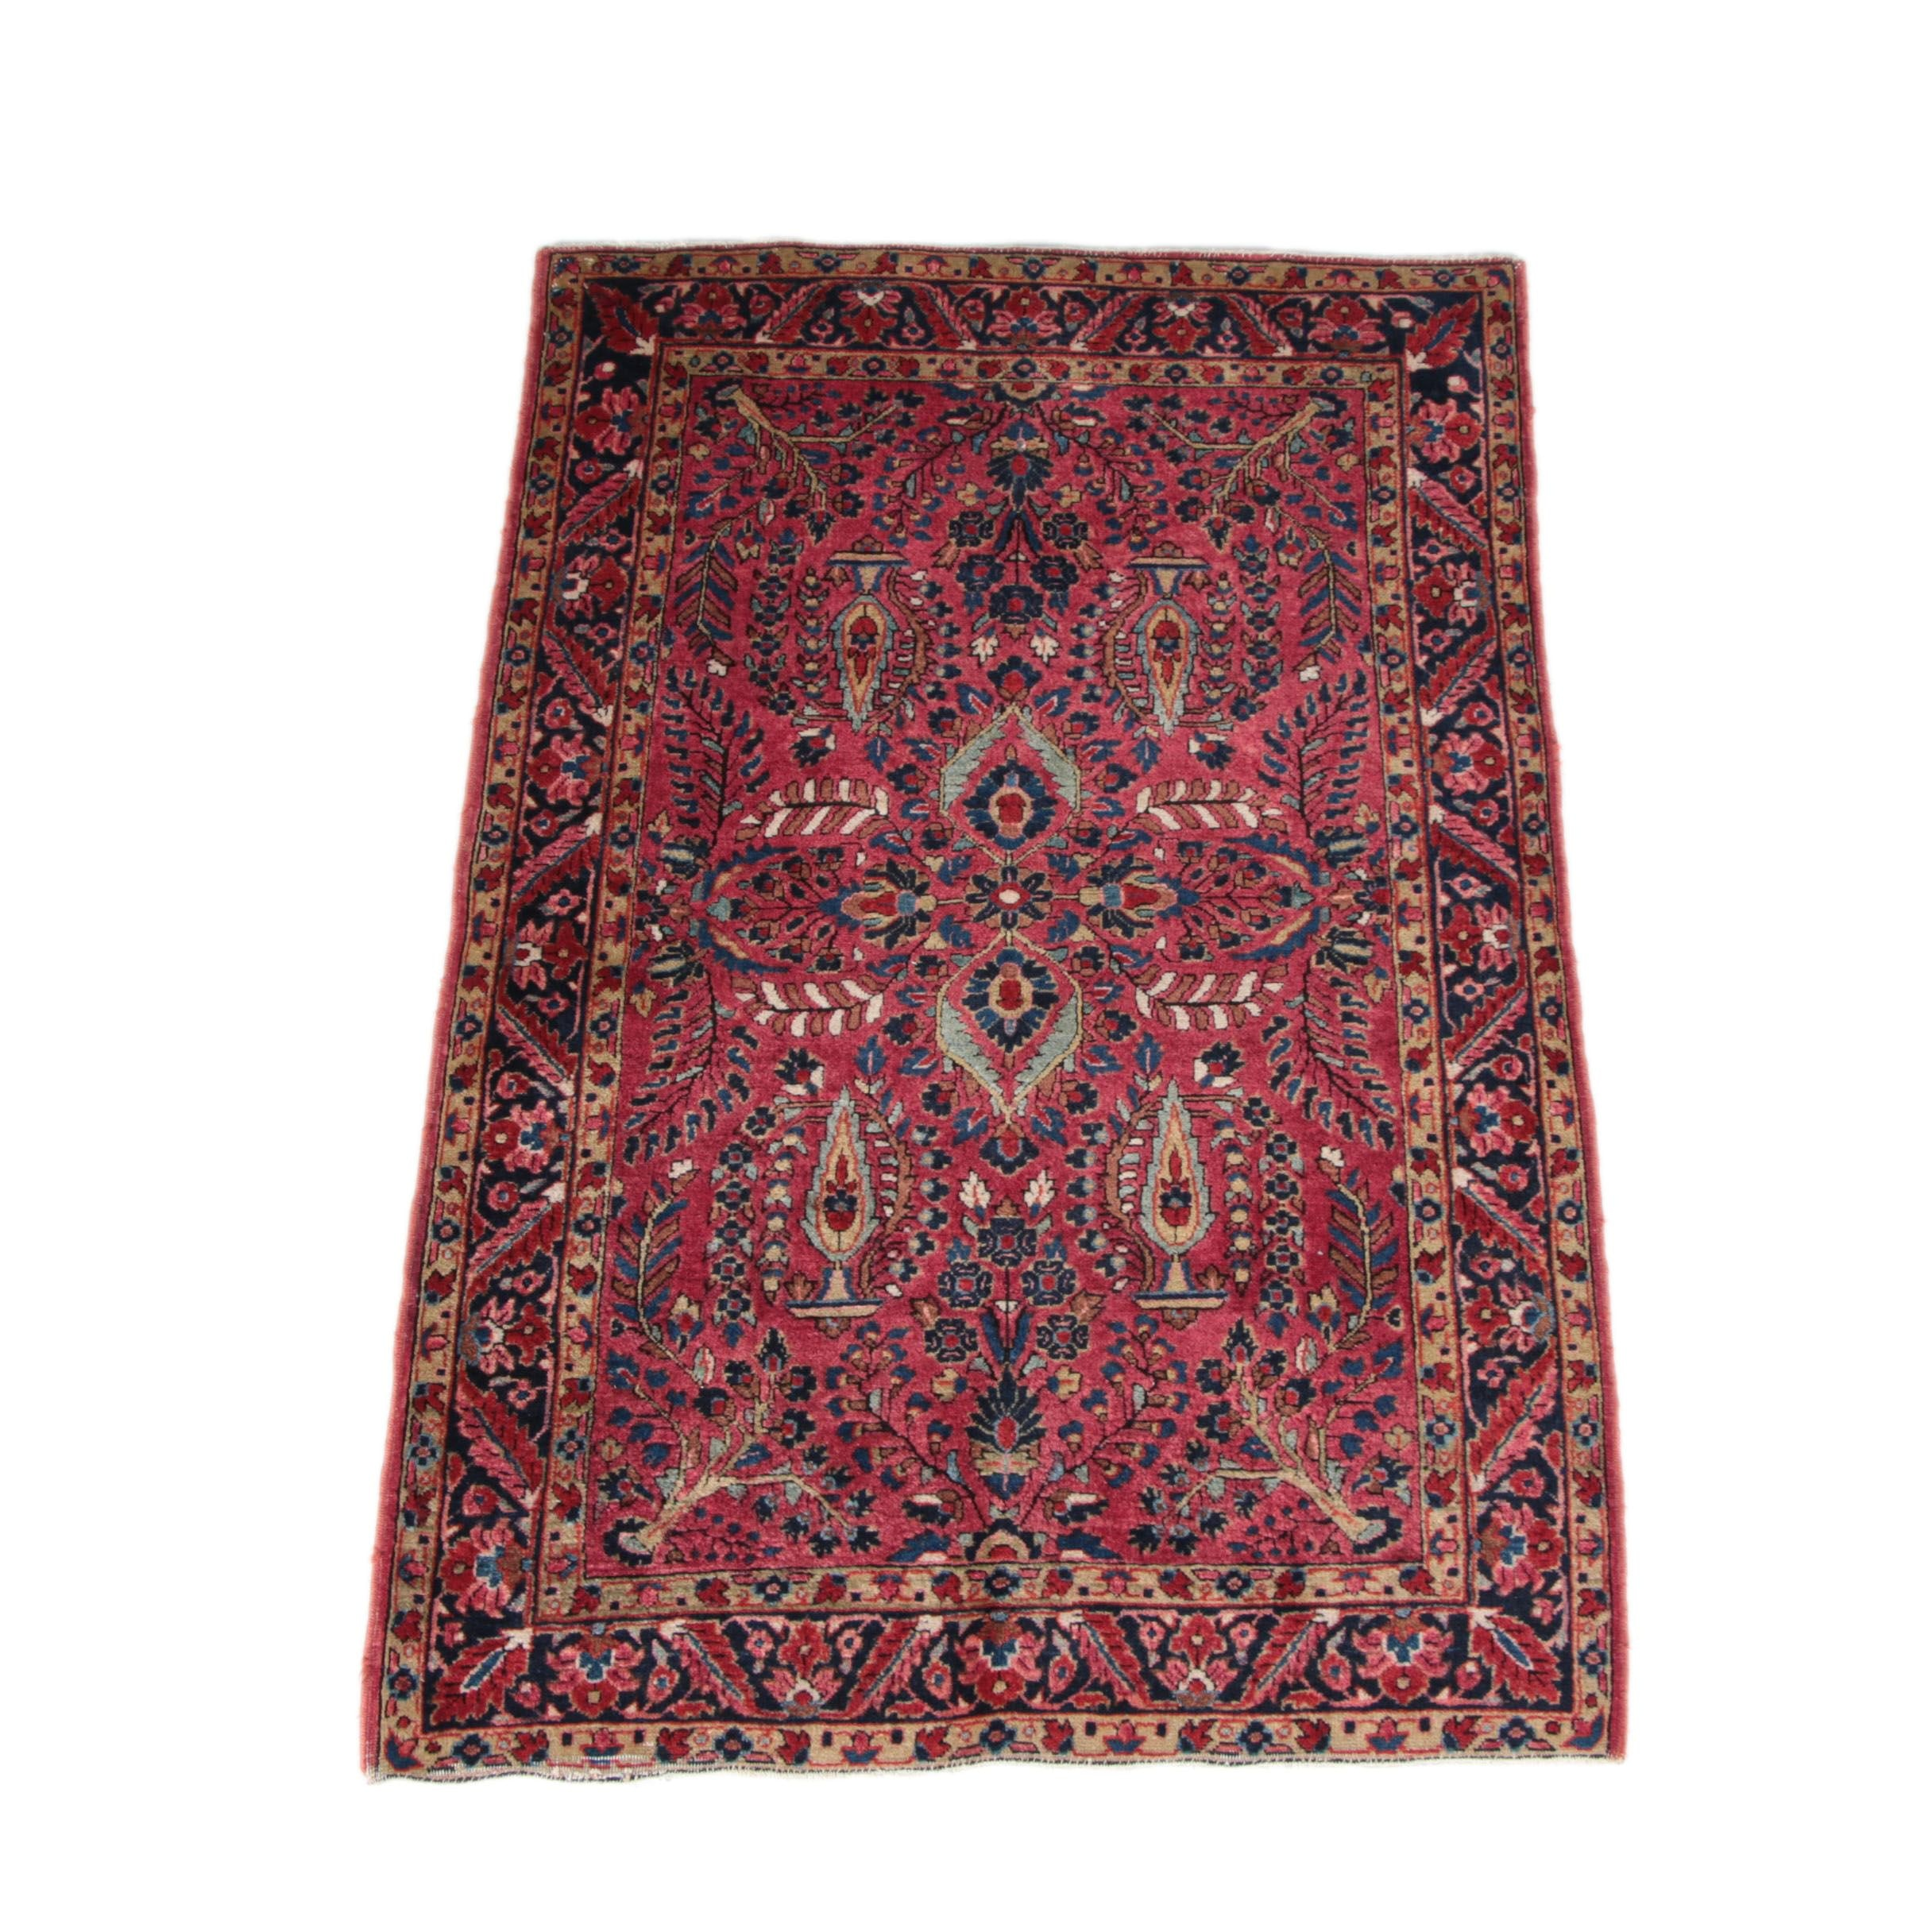 Semi-Antique Hand-Knotted Persian Mehriban Area Rug